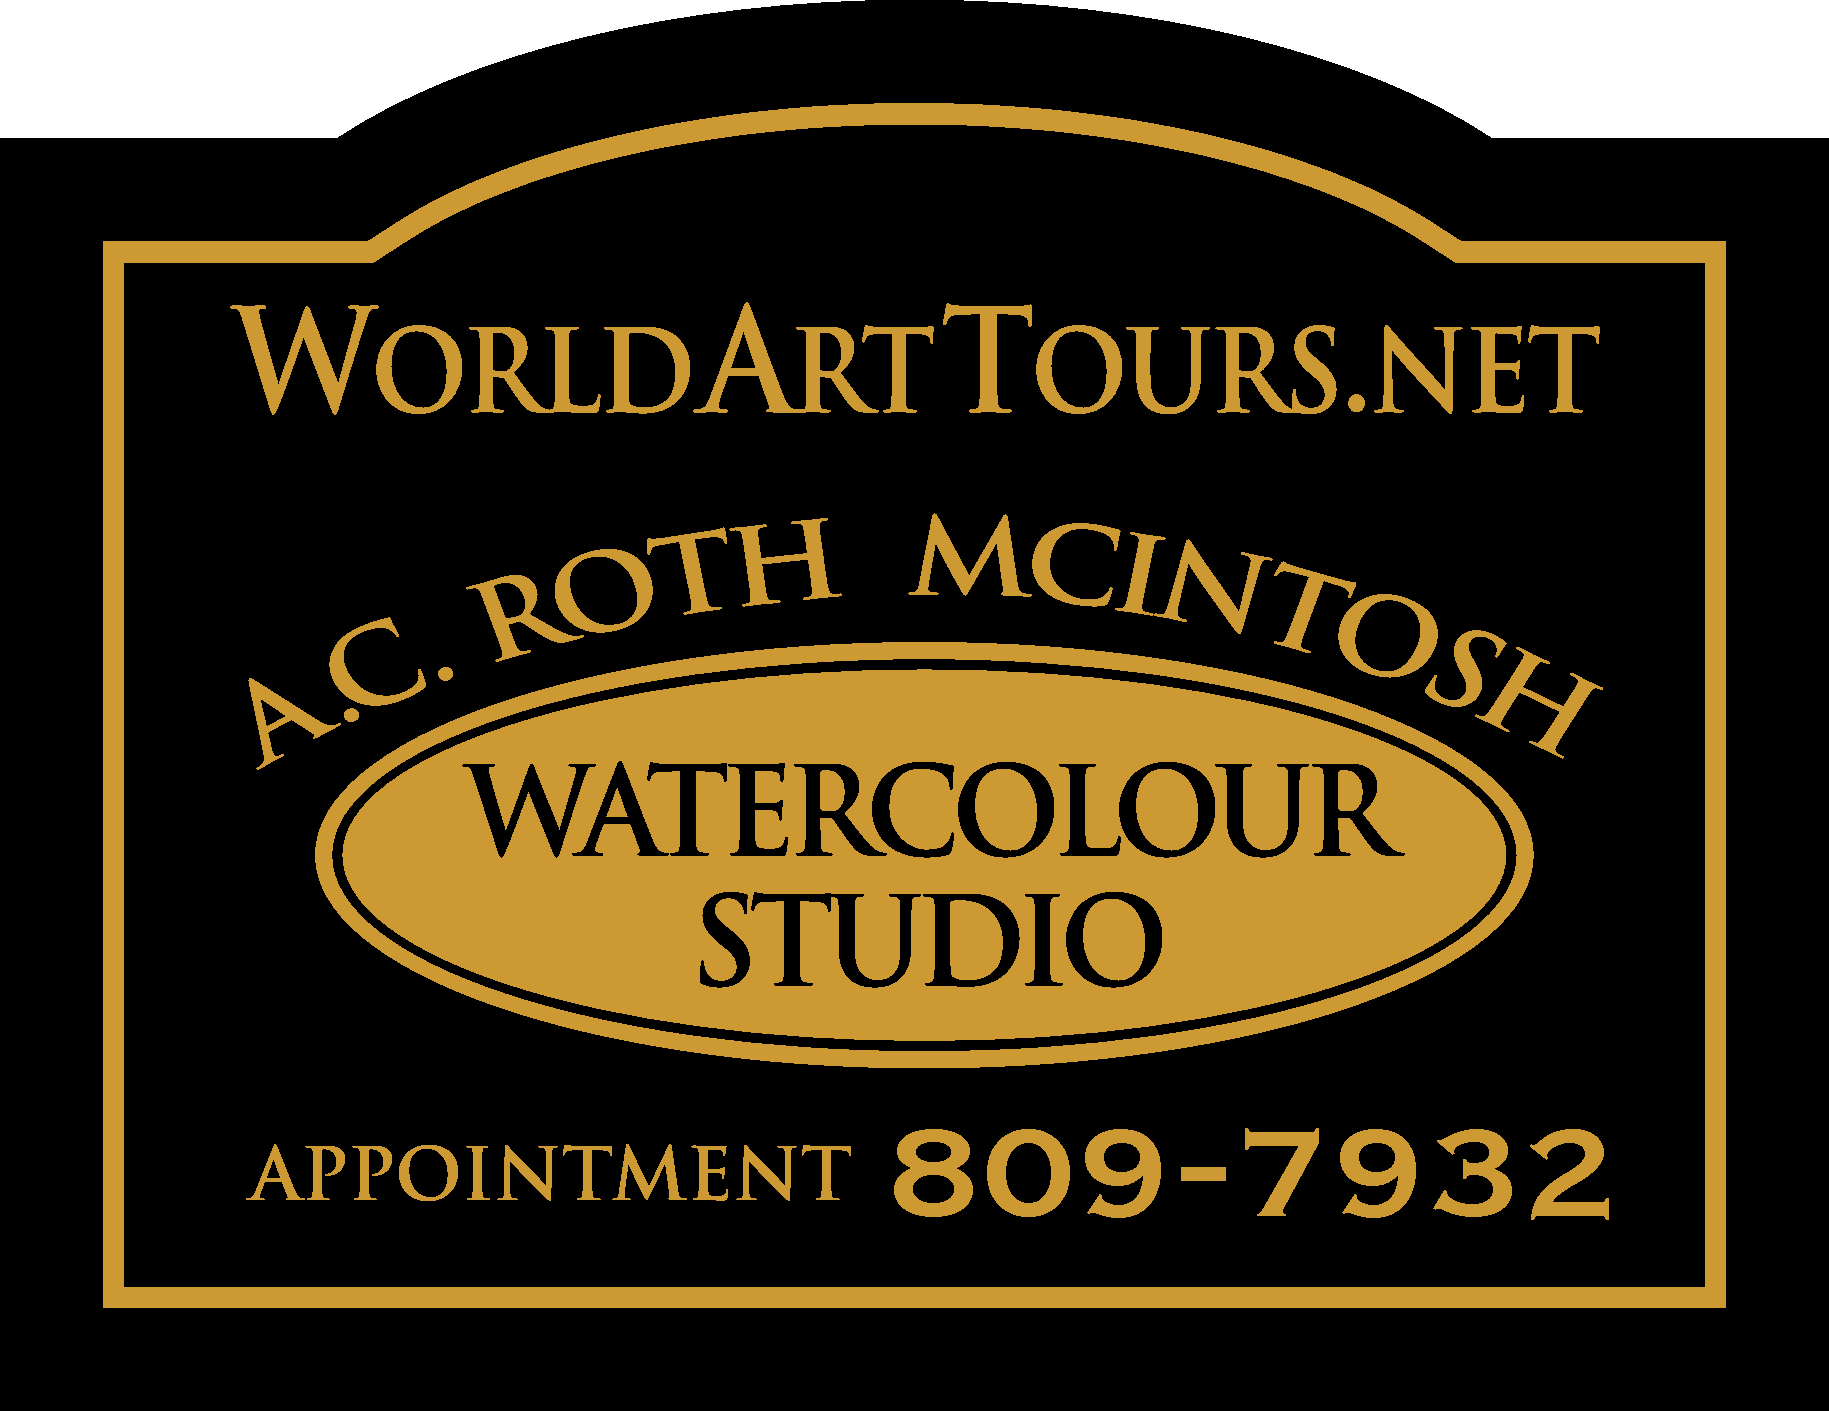 WorldArtTours.net sign